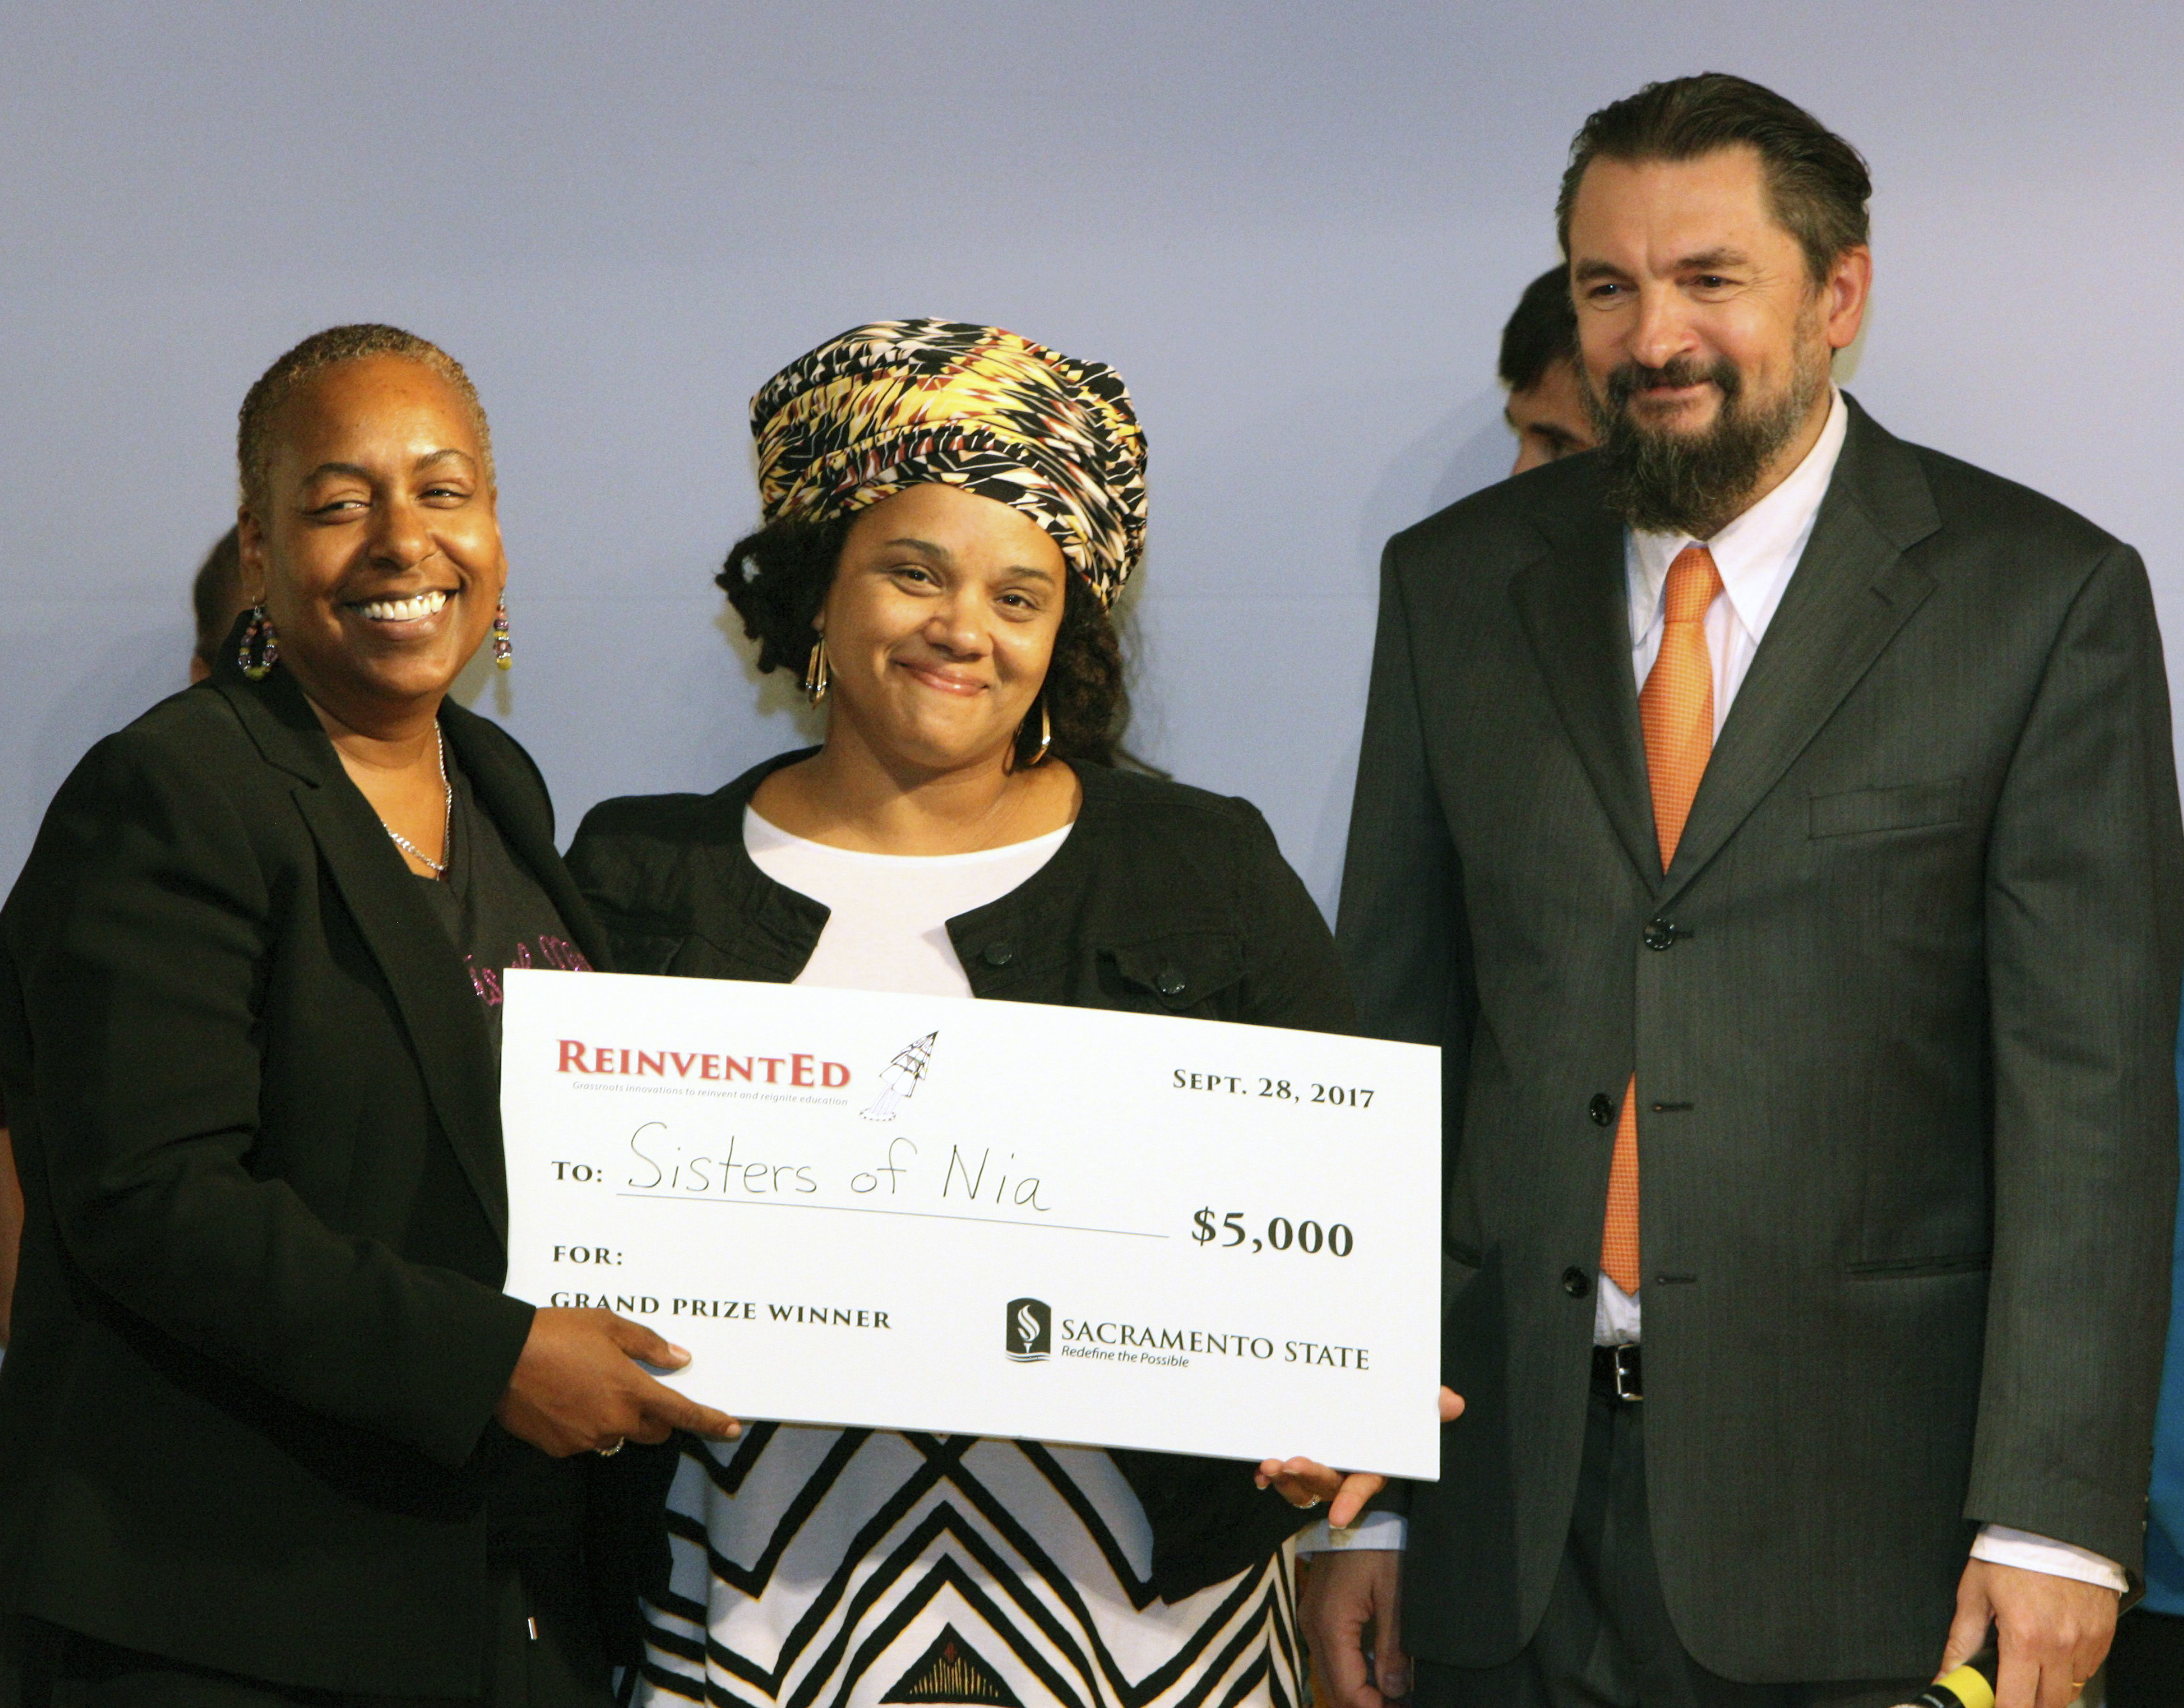 Sisters of Nia co-founders Synthia Smith and Malika Hollinside, holding a $5,000 prize check alongside College of Education Dean Sasha Sidorkin.